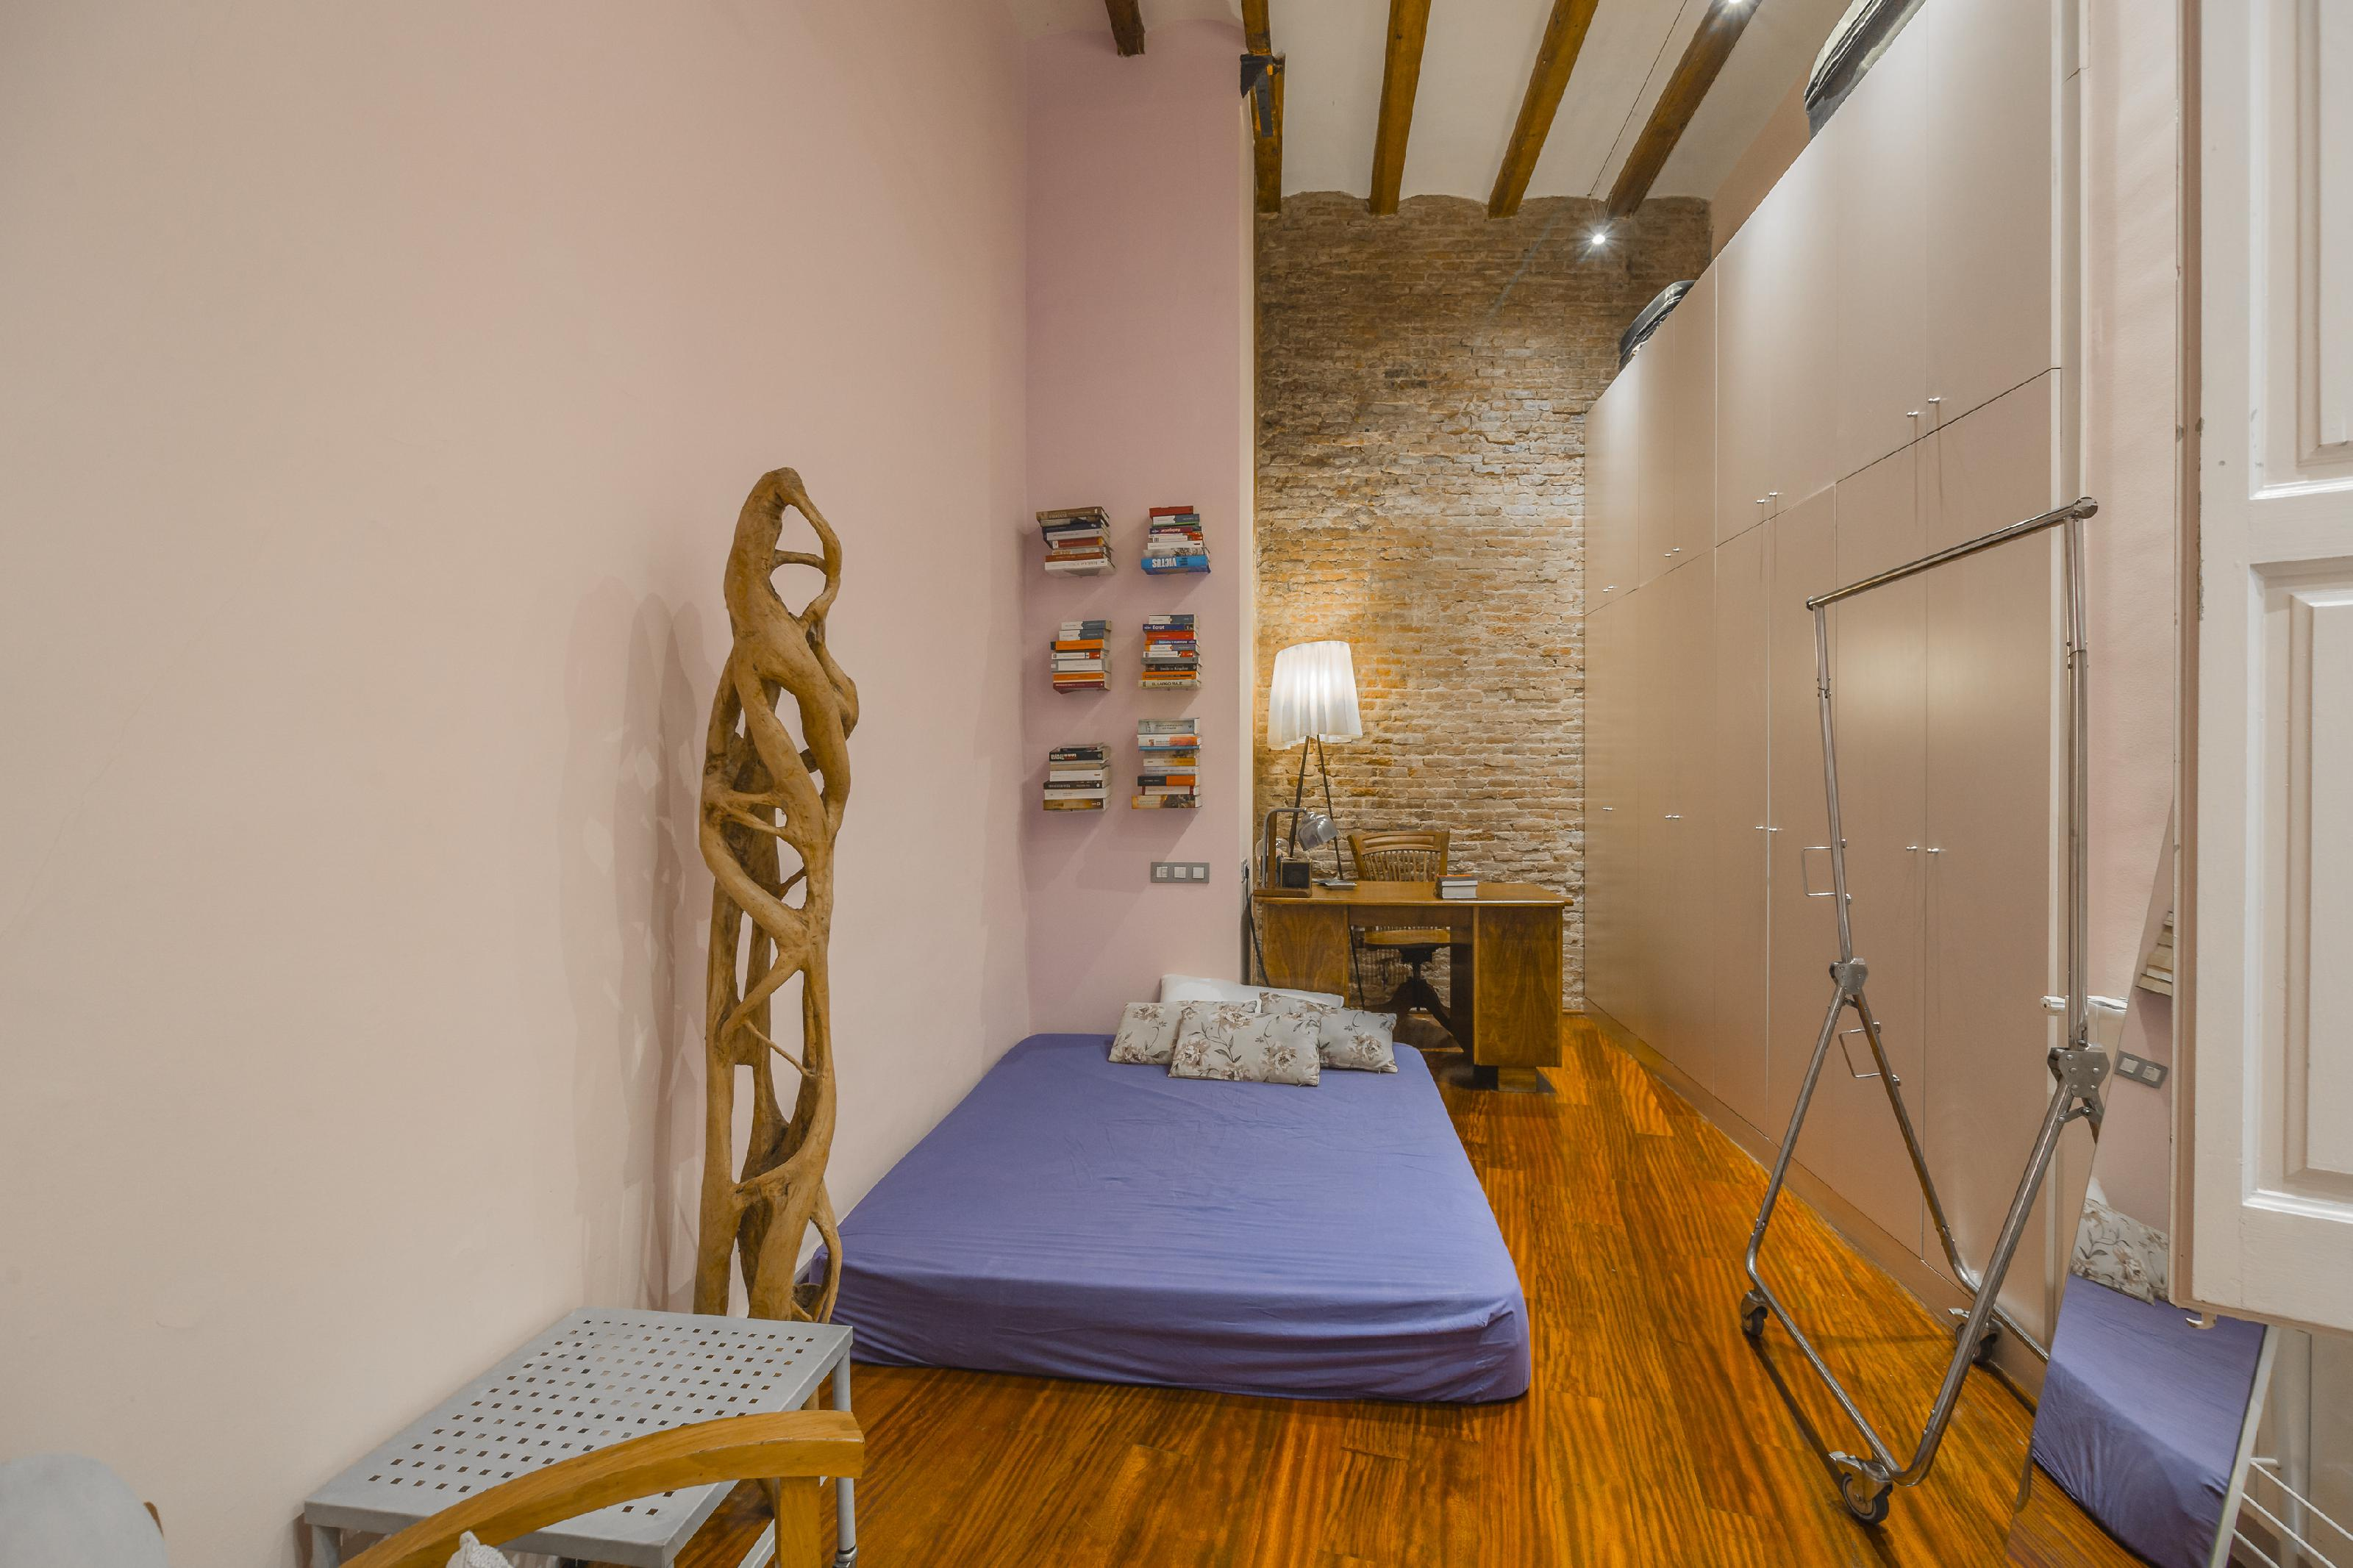 241111 Flat for sale in Ciutat Vella, Barri Gótic 22